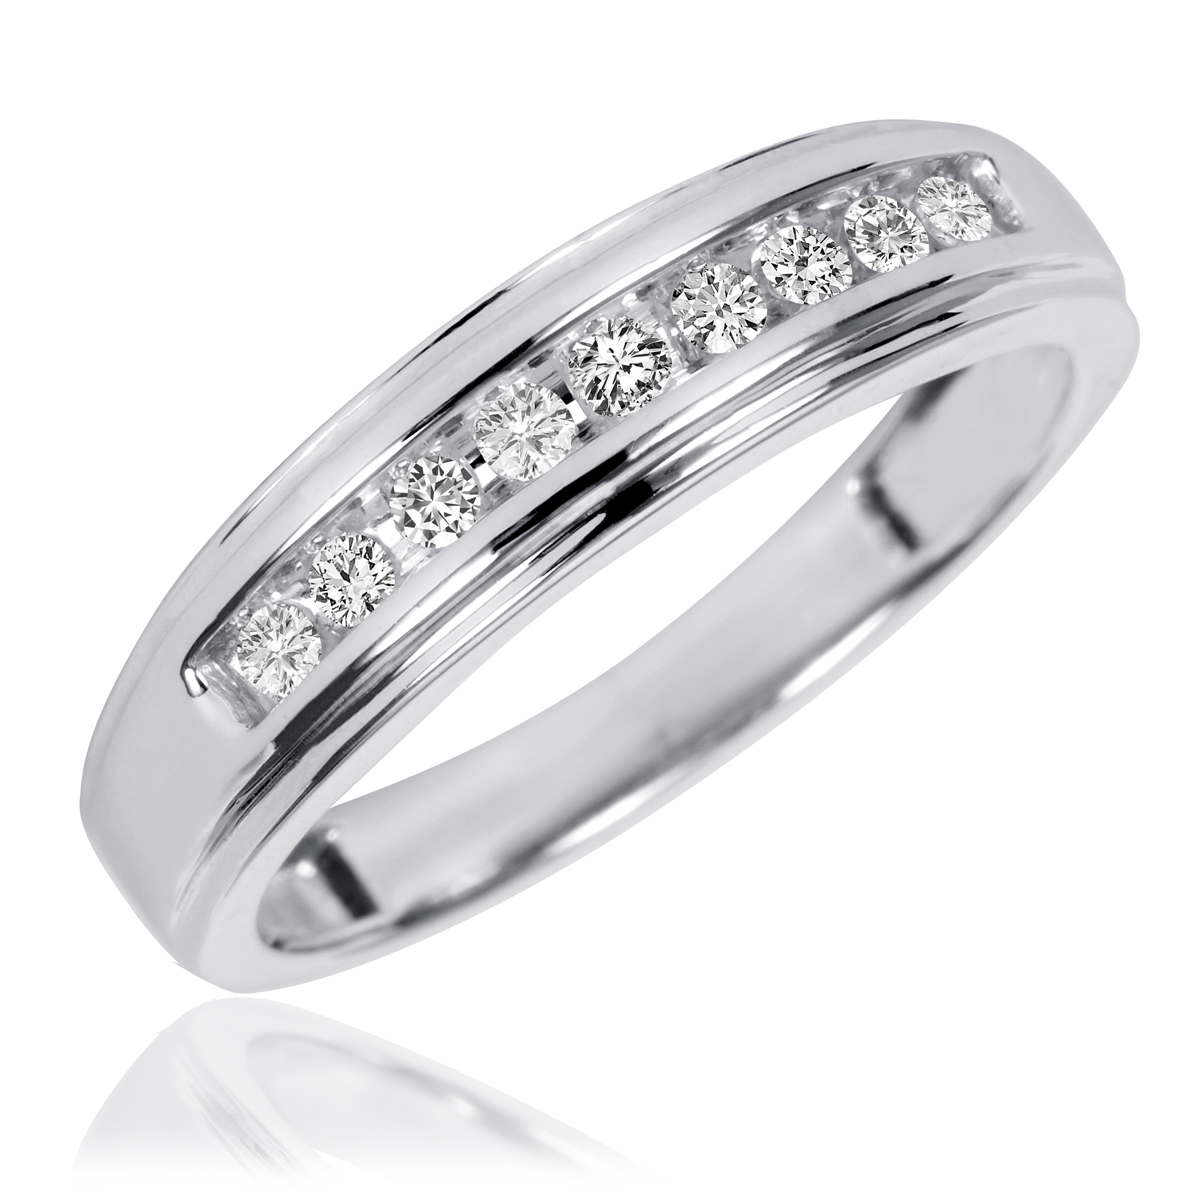 3 8 carat tw diamond his and hers wedding band set 10k for Wedding rings in white gold